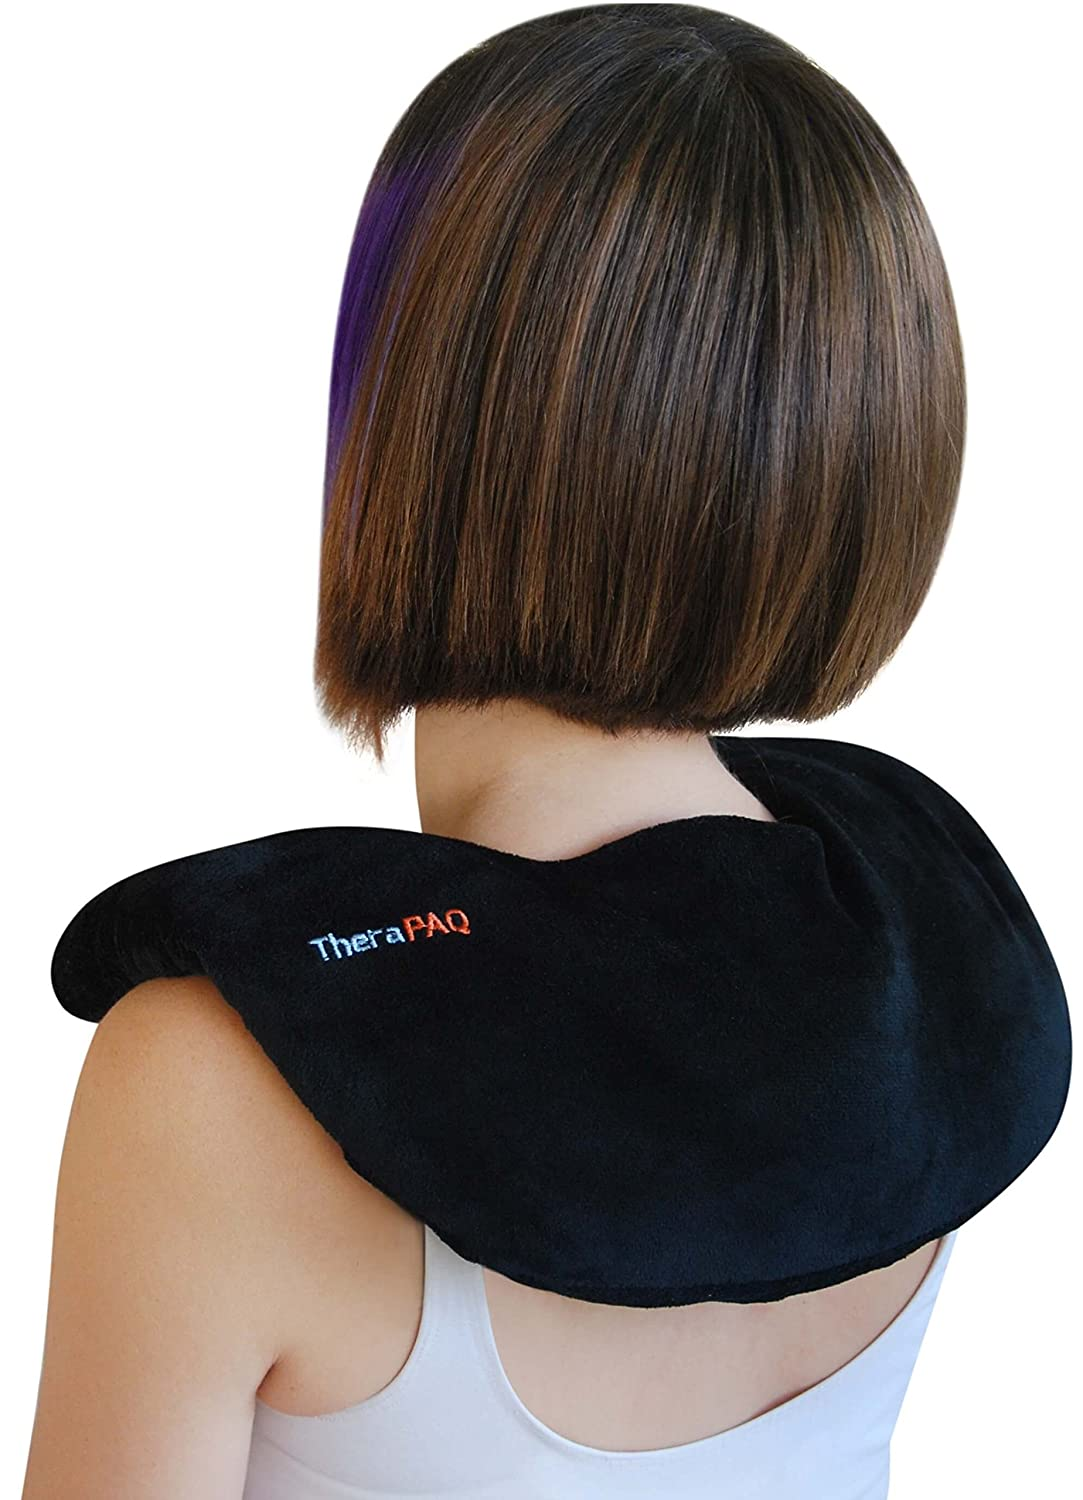 Neck and Shoulder Pain Relief Heating Pad by TheraPAQ - Best for Natural Moist Heat Therapy or as Cold Pack - Reusable, Microwave Heated Wrap - Non-Scented